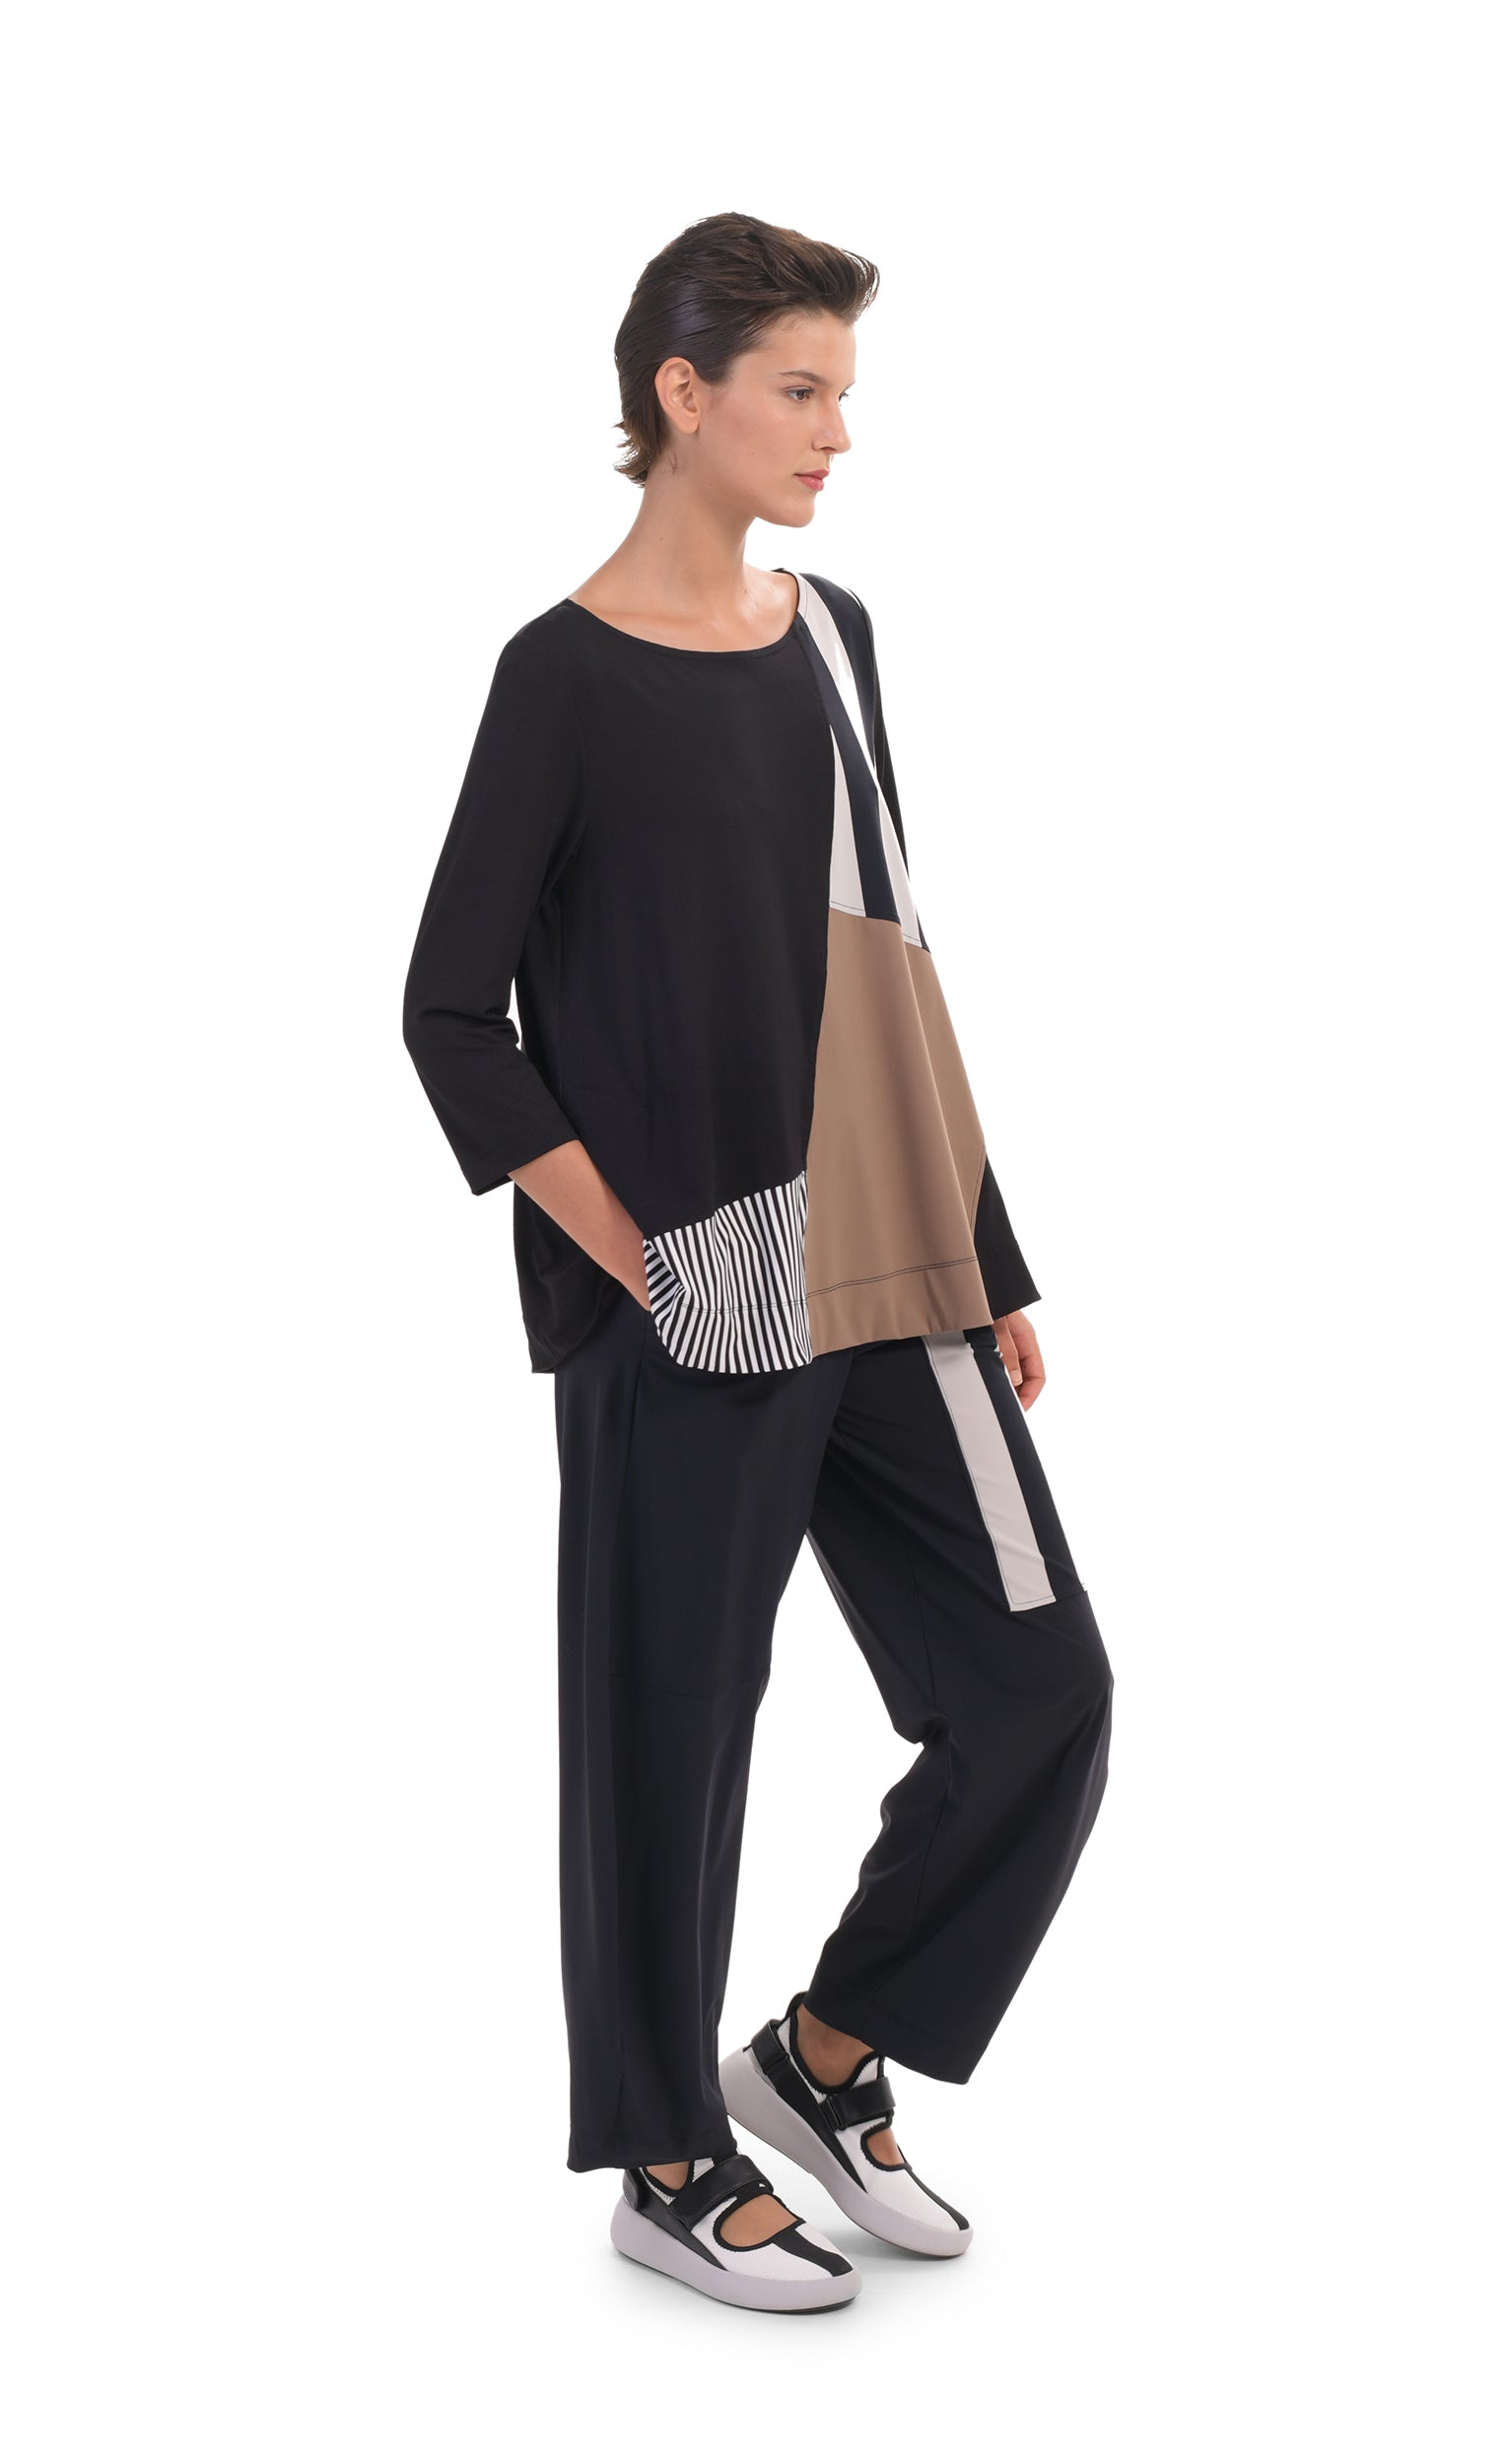 Front, left full body view of a woman wearing the alembika tekbika mixed print top. This top has 3/4 length sleeves and blocking of black and white stripes and mocha colored patches. On the bottom she is wearing a wide leg pant with a black and white striped patch.